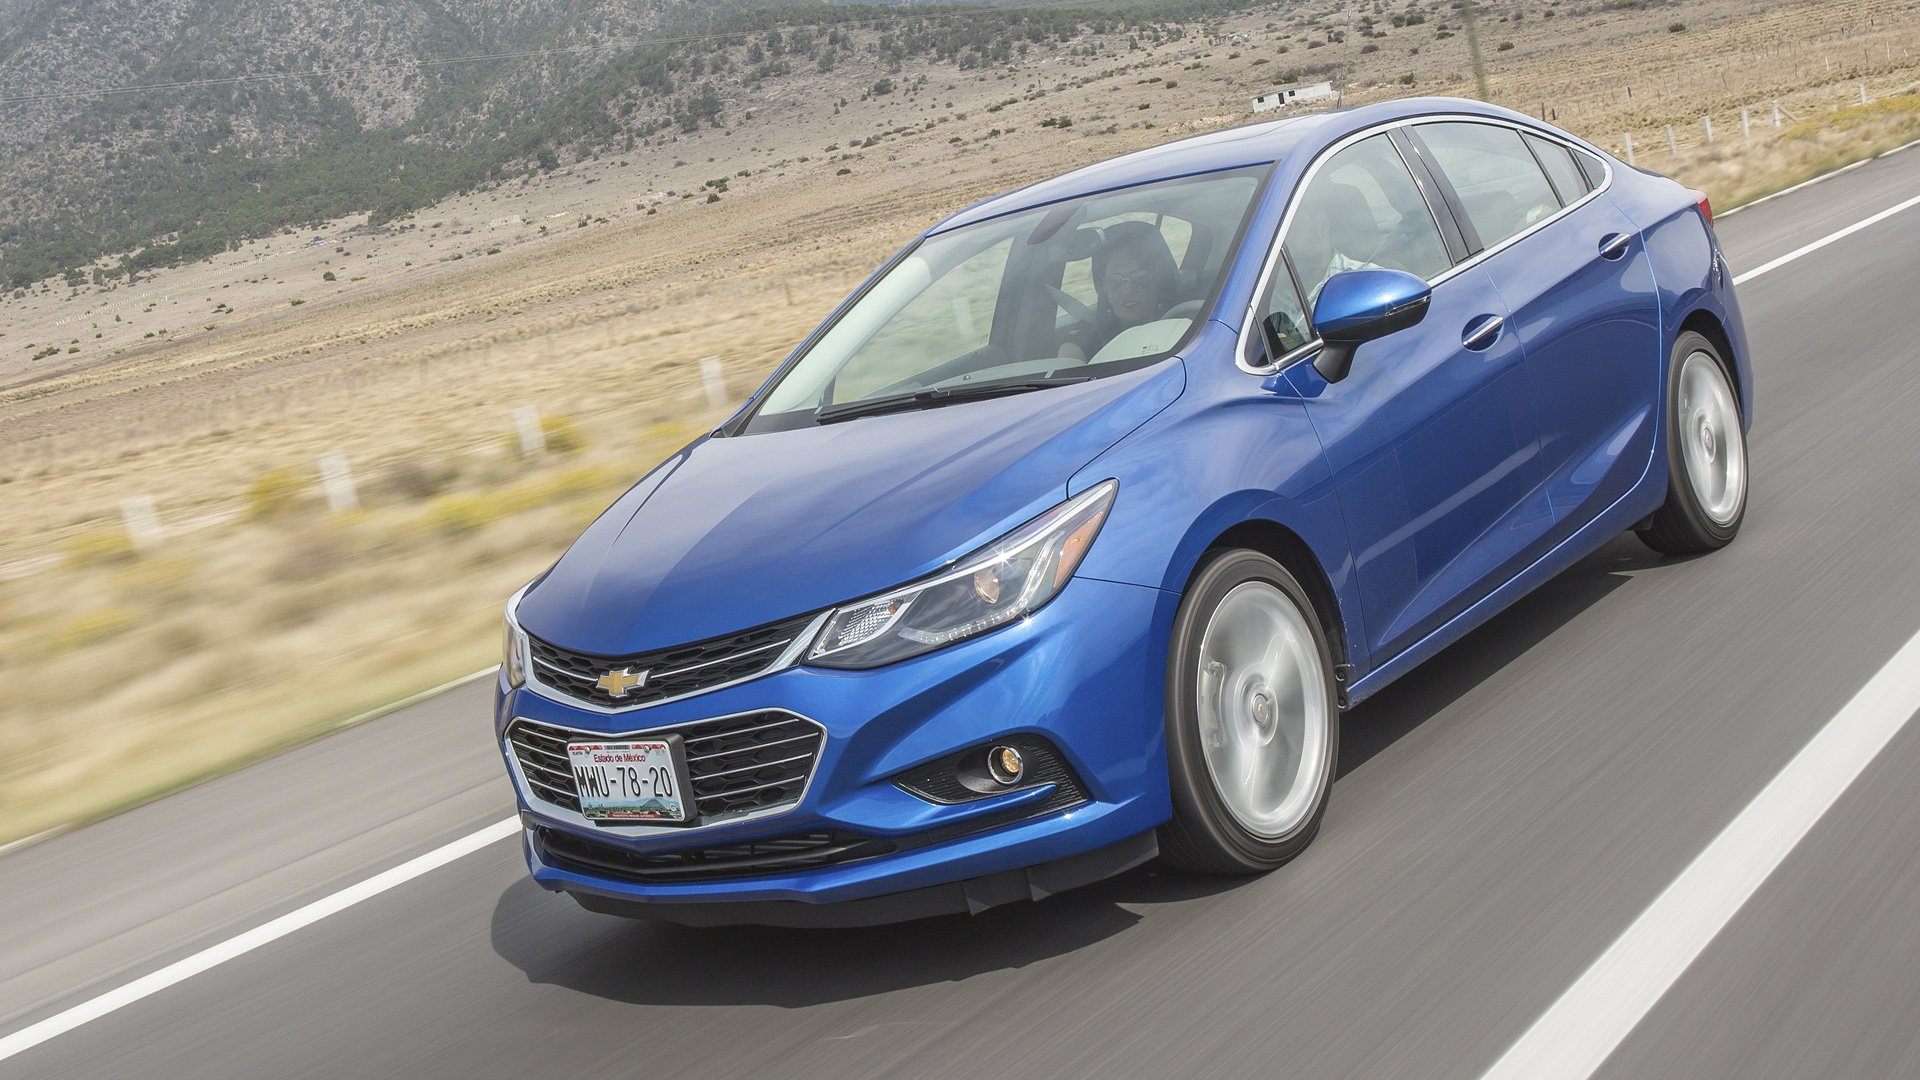 New 2019 Chevrolet Cruze Test Drive On Road